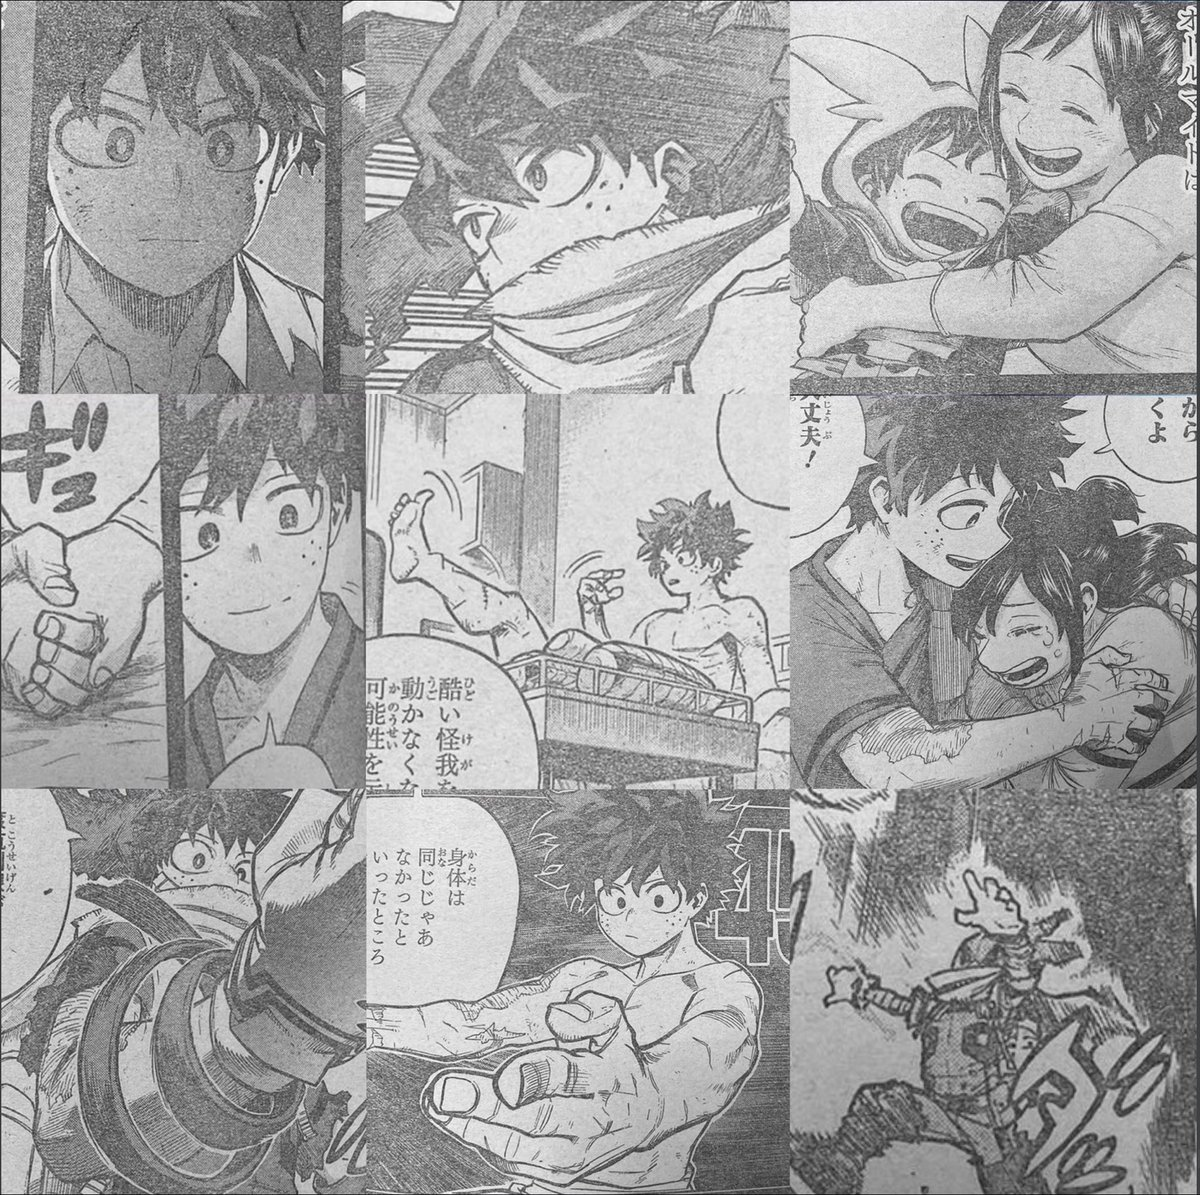 RT @andybewilding: #bnha309 SHAWTY GETTING HOTTER AND HOTTER BY EVERY CHAPTER THE FUCK IDNDNDNF I CANT TAKE THIS https://t.co/SyJYHvOTMo